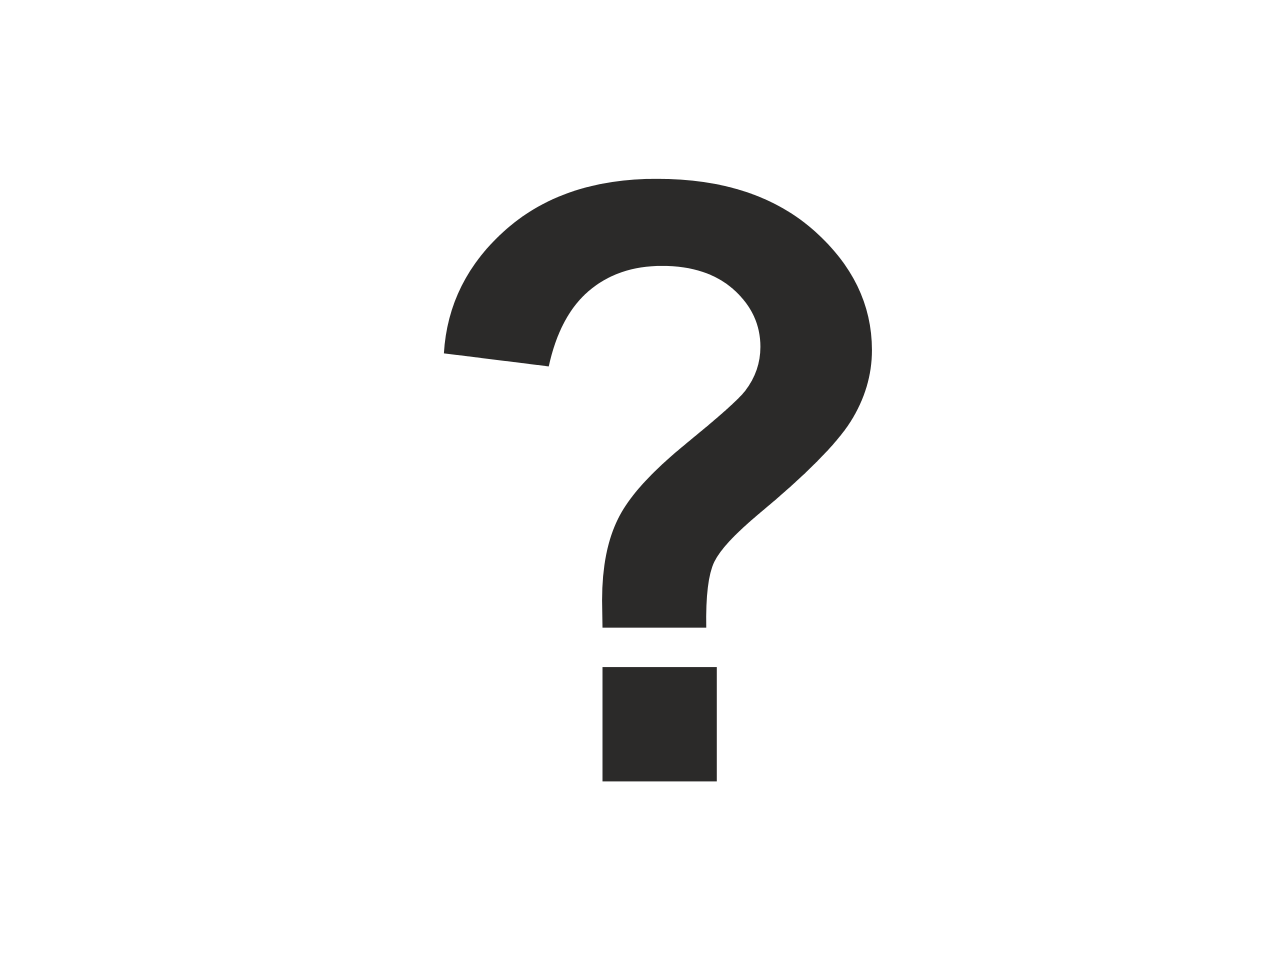 Question Mark svg #20, Download drawings